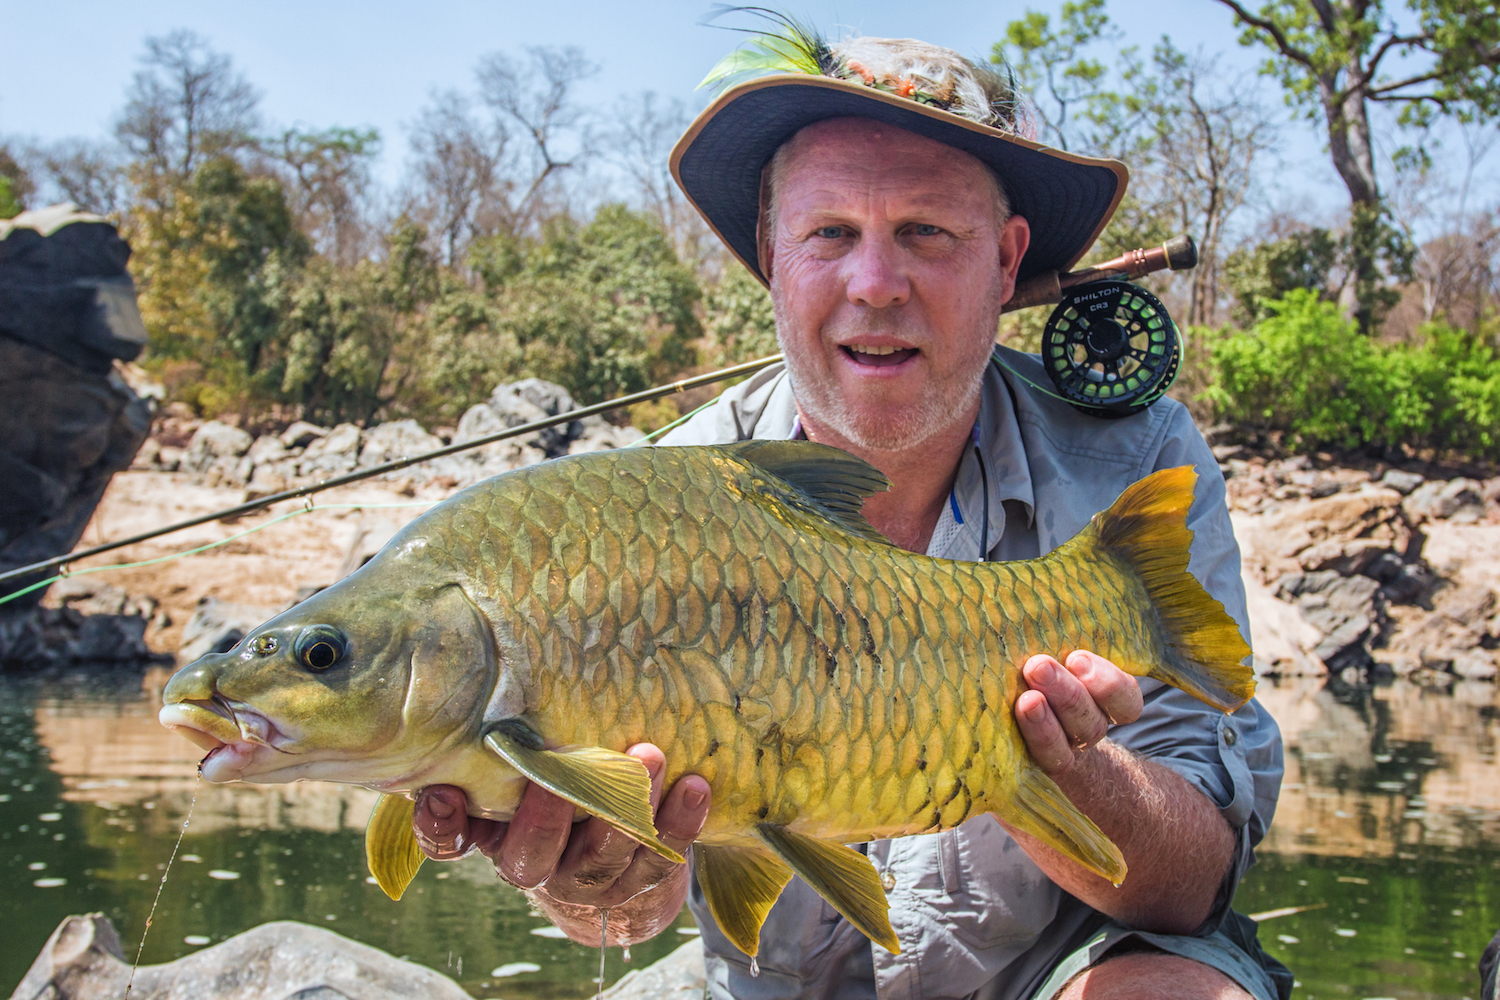 "It's rare for fly anglers to focus on something else at the expense of three species of tigerfish and 8lb yellowfish, but on recent exploratories to Tourette Fishing's new fishery in Cameroon, the focus was 98% on the mammoth riverine Nile perch they found. That doesn't mean the 2% ""bycatch"" was not of interest. In an outtake from his issue 10 story 'Capitaine', Ed Truter weighs in on what else you can target when fly fishing in Cameroon."